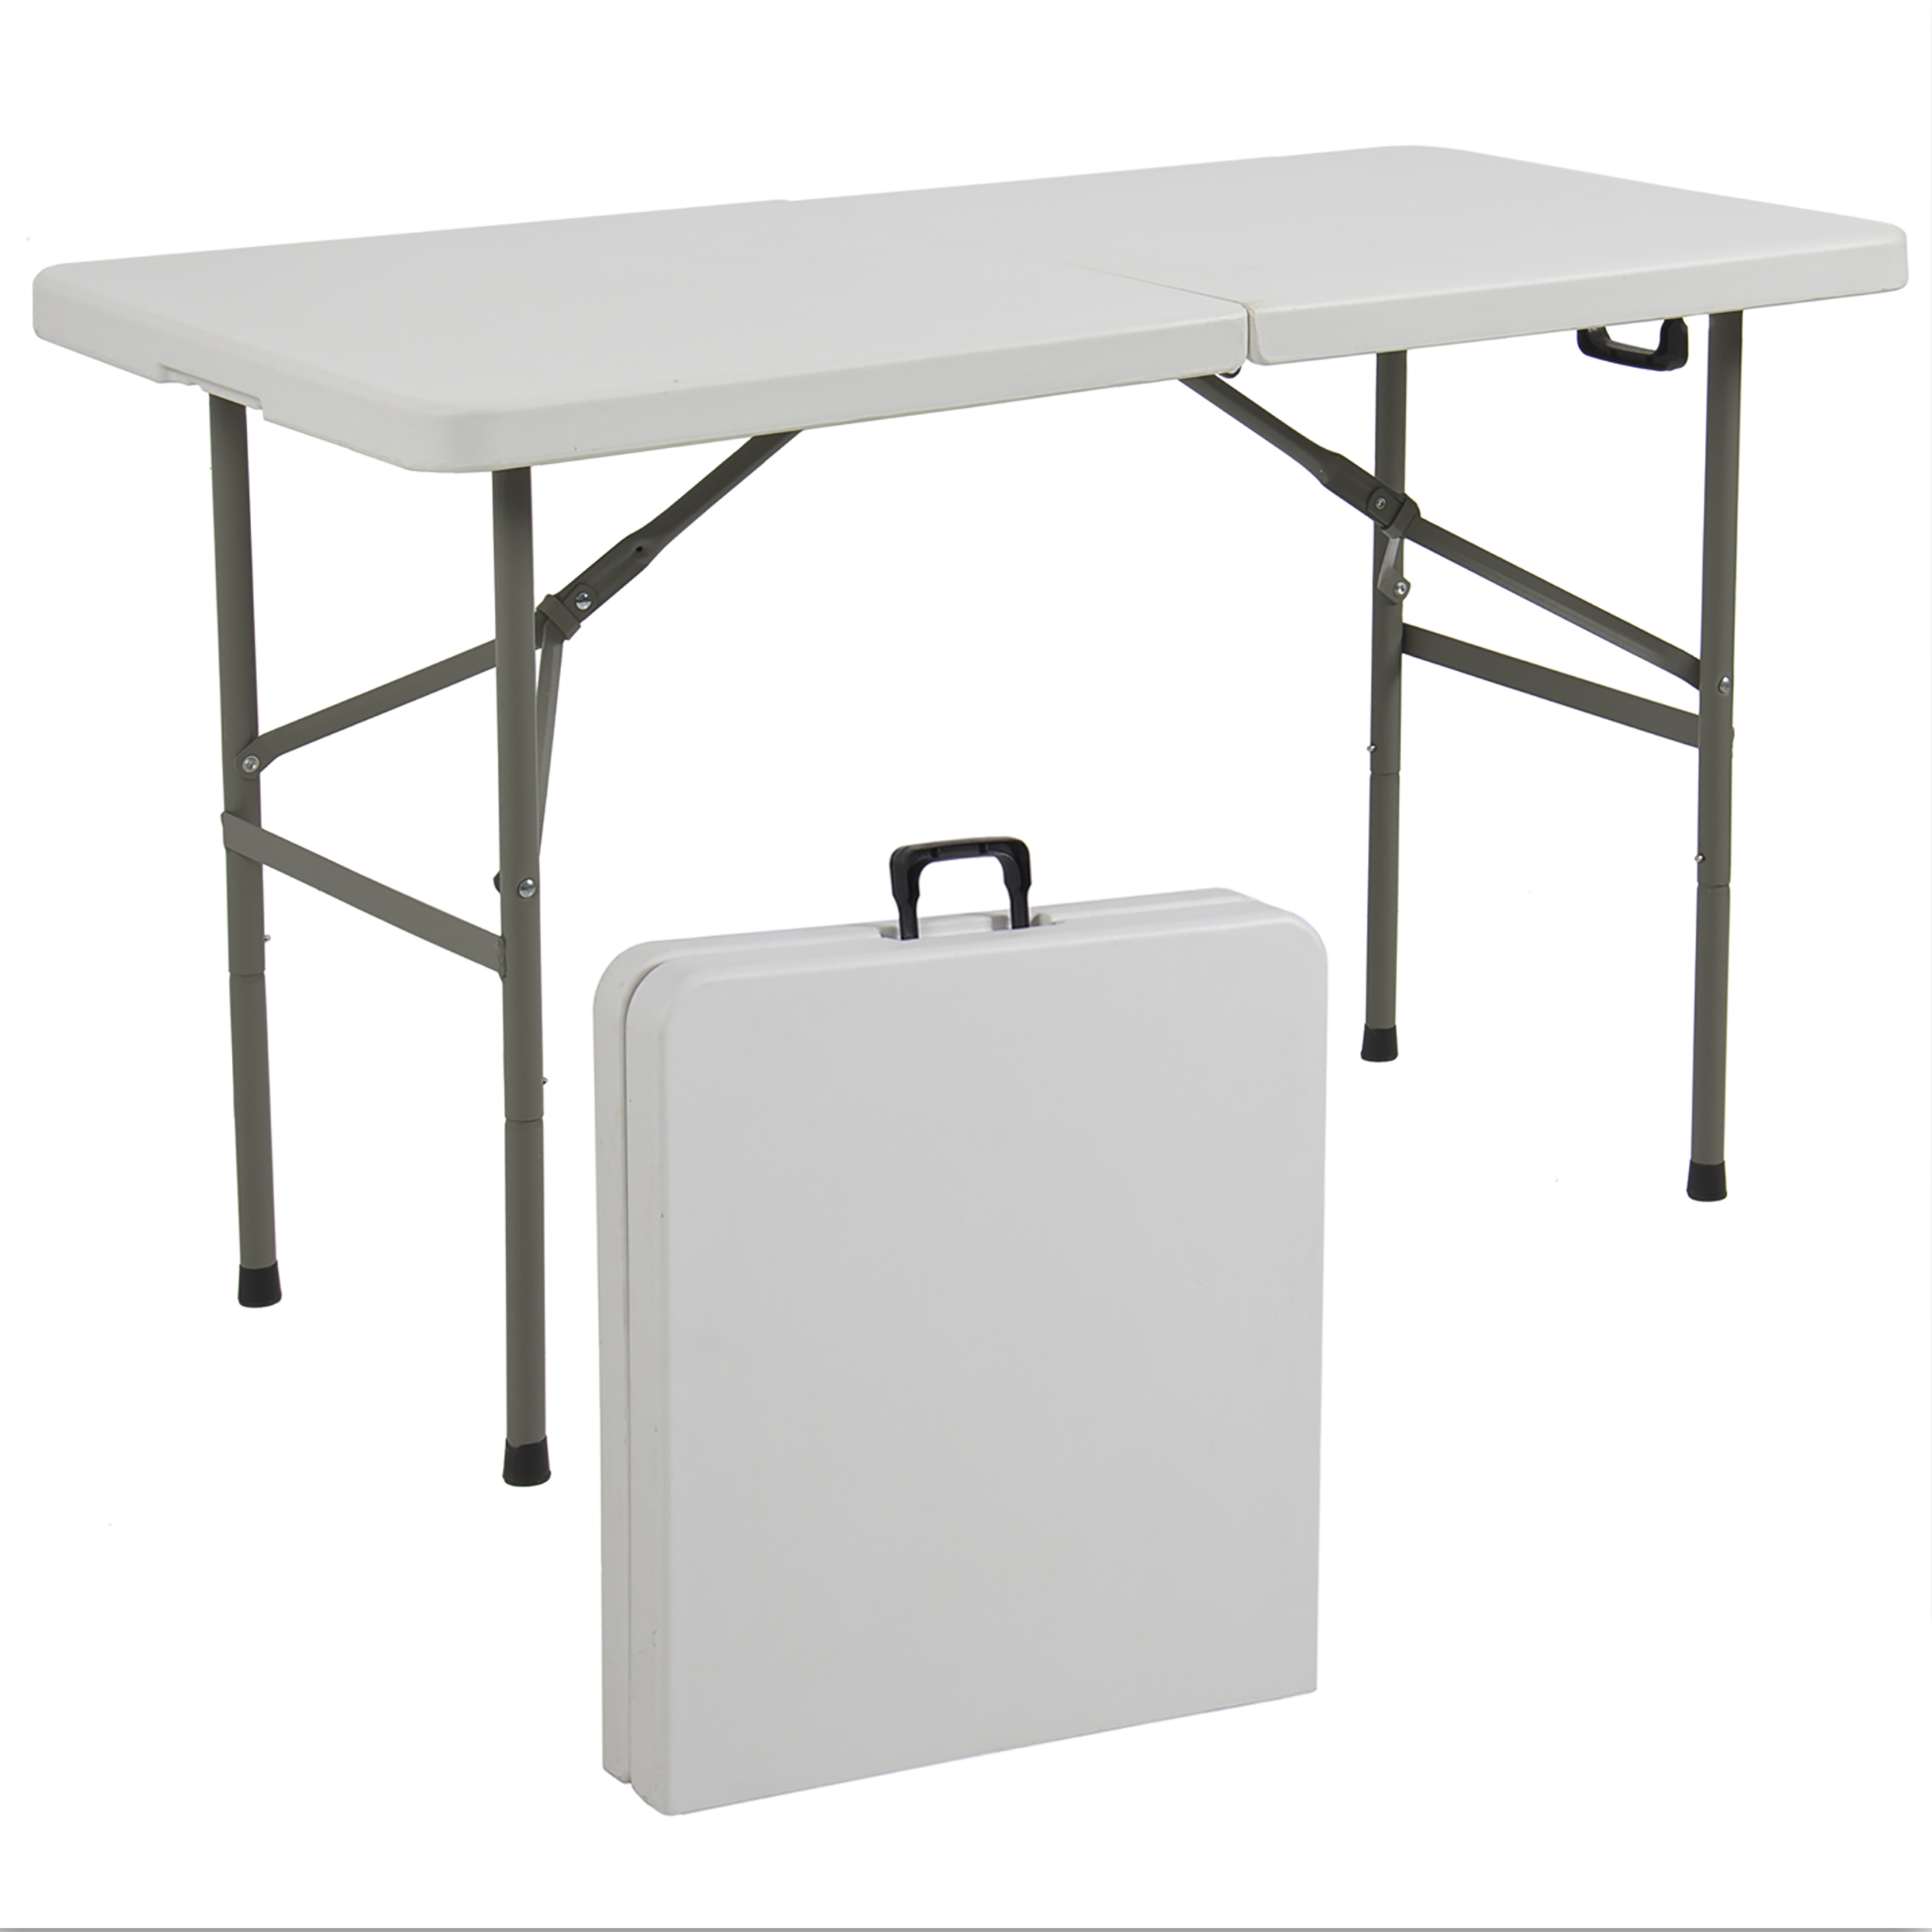 highlander table single co dp folding outdoors silver uk amazon compact foldable sports